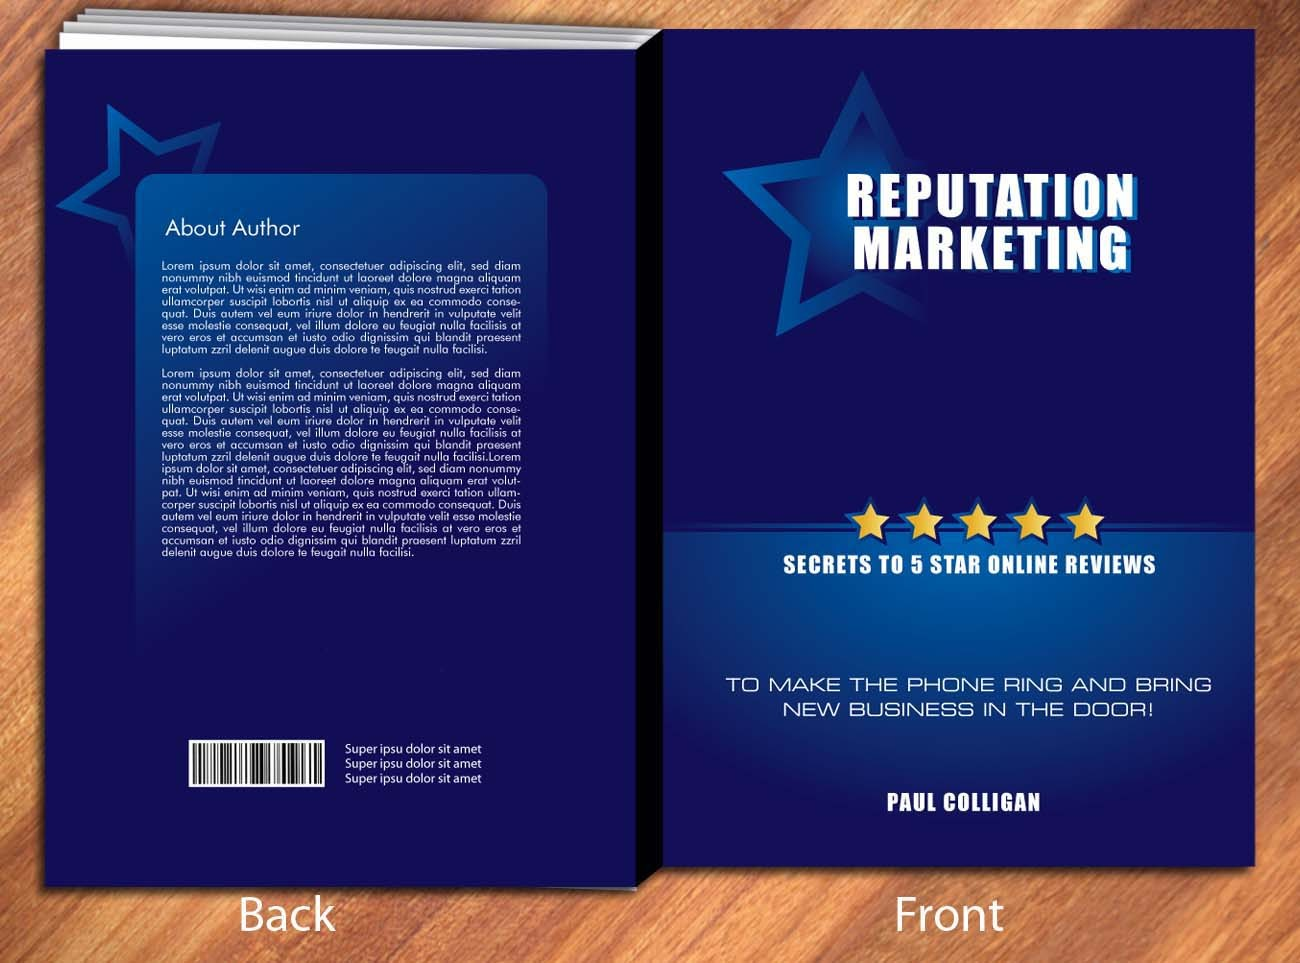 Design book covers online - Book Cover Design